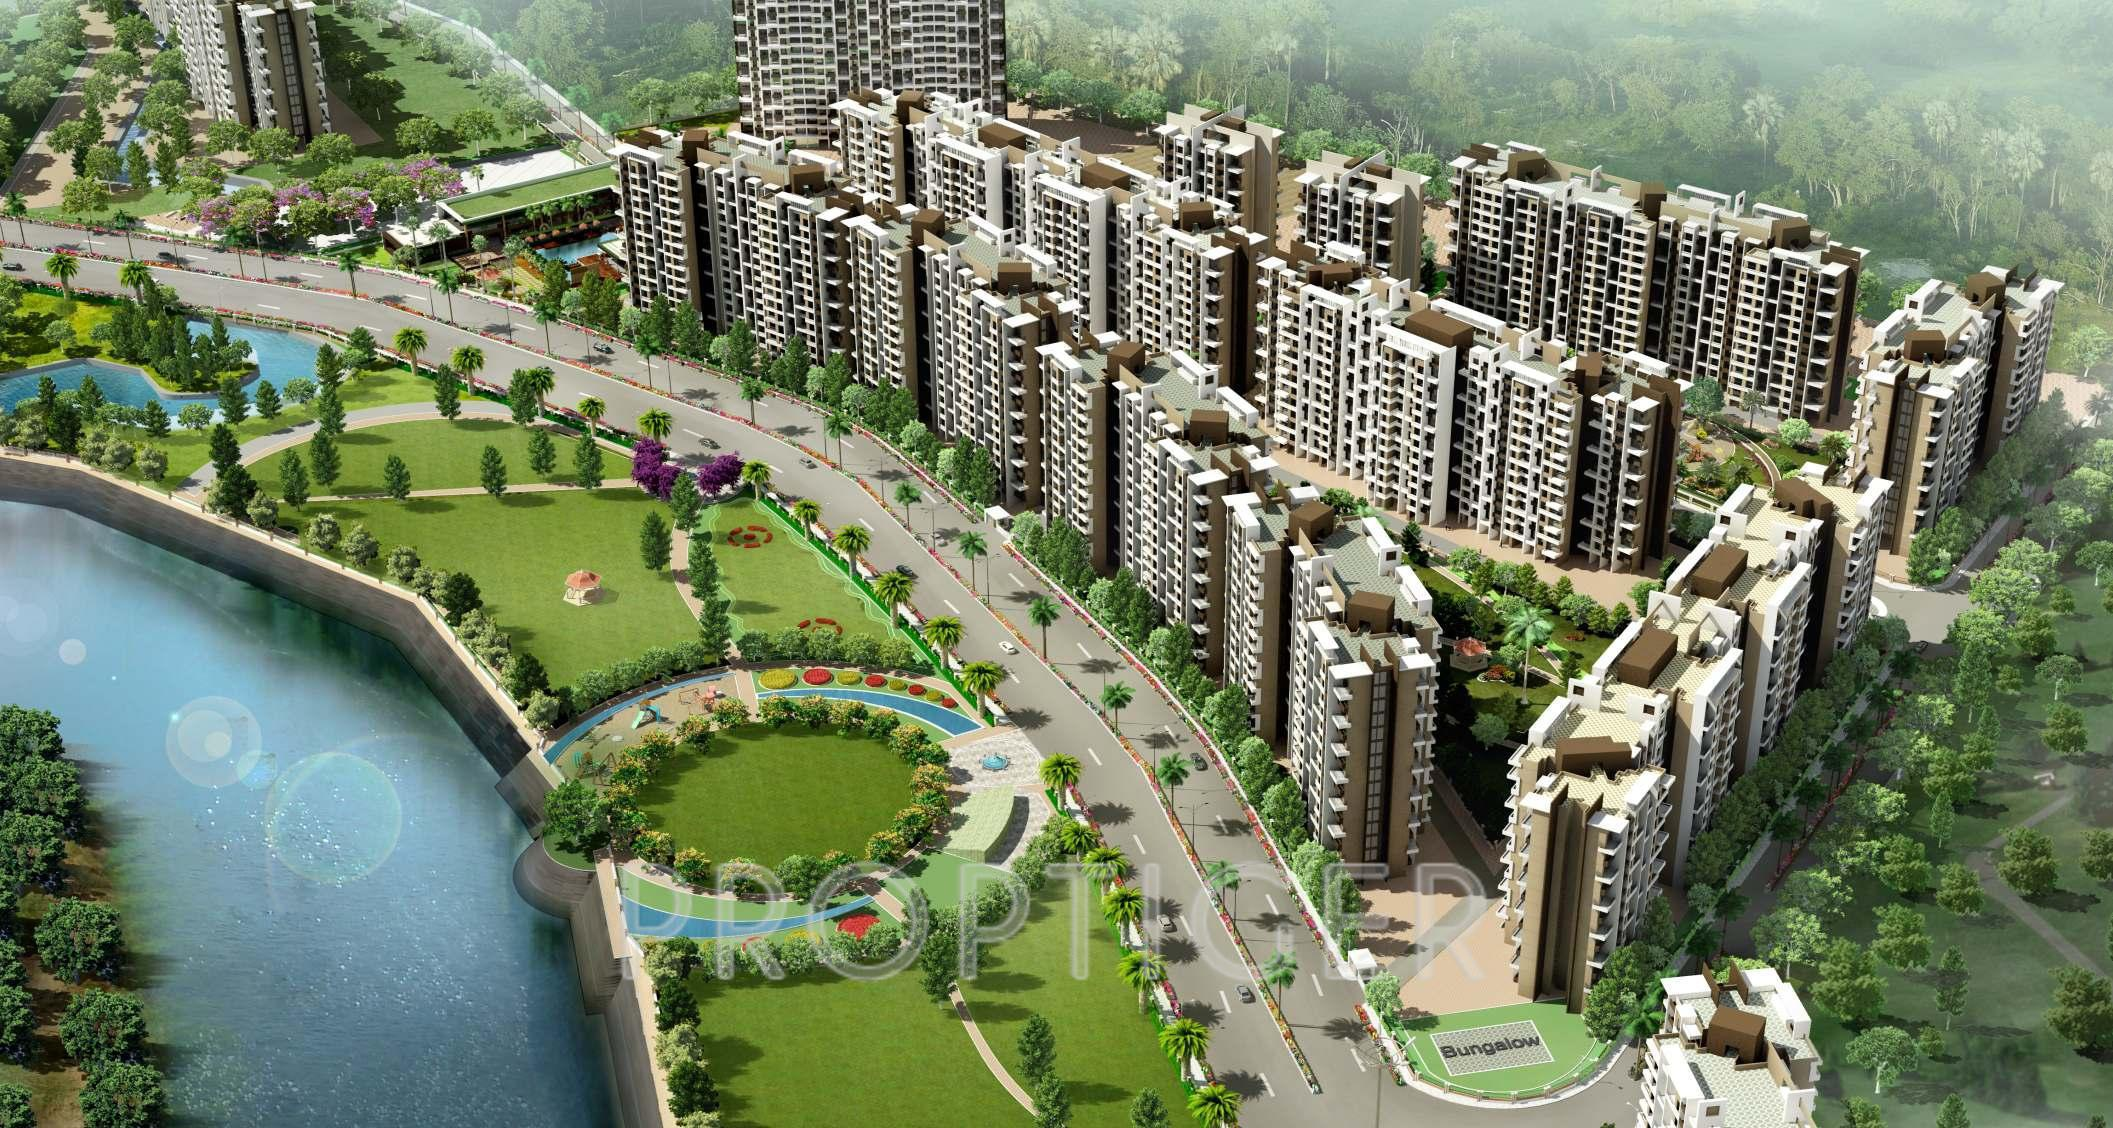 705 Sq Ft 1 Bhk 1t Apartment For Sale In Regency Group